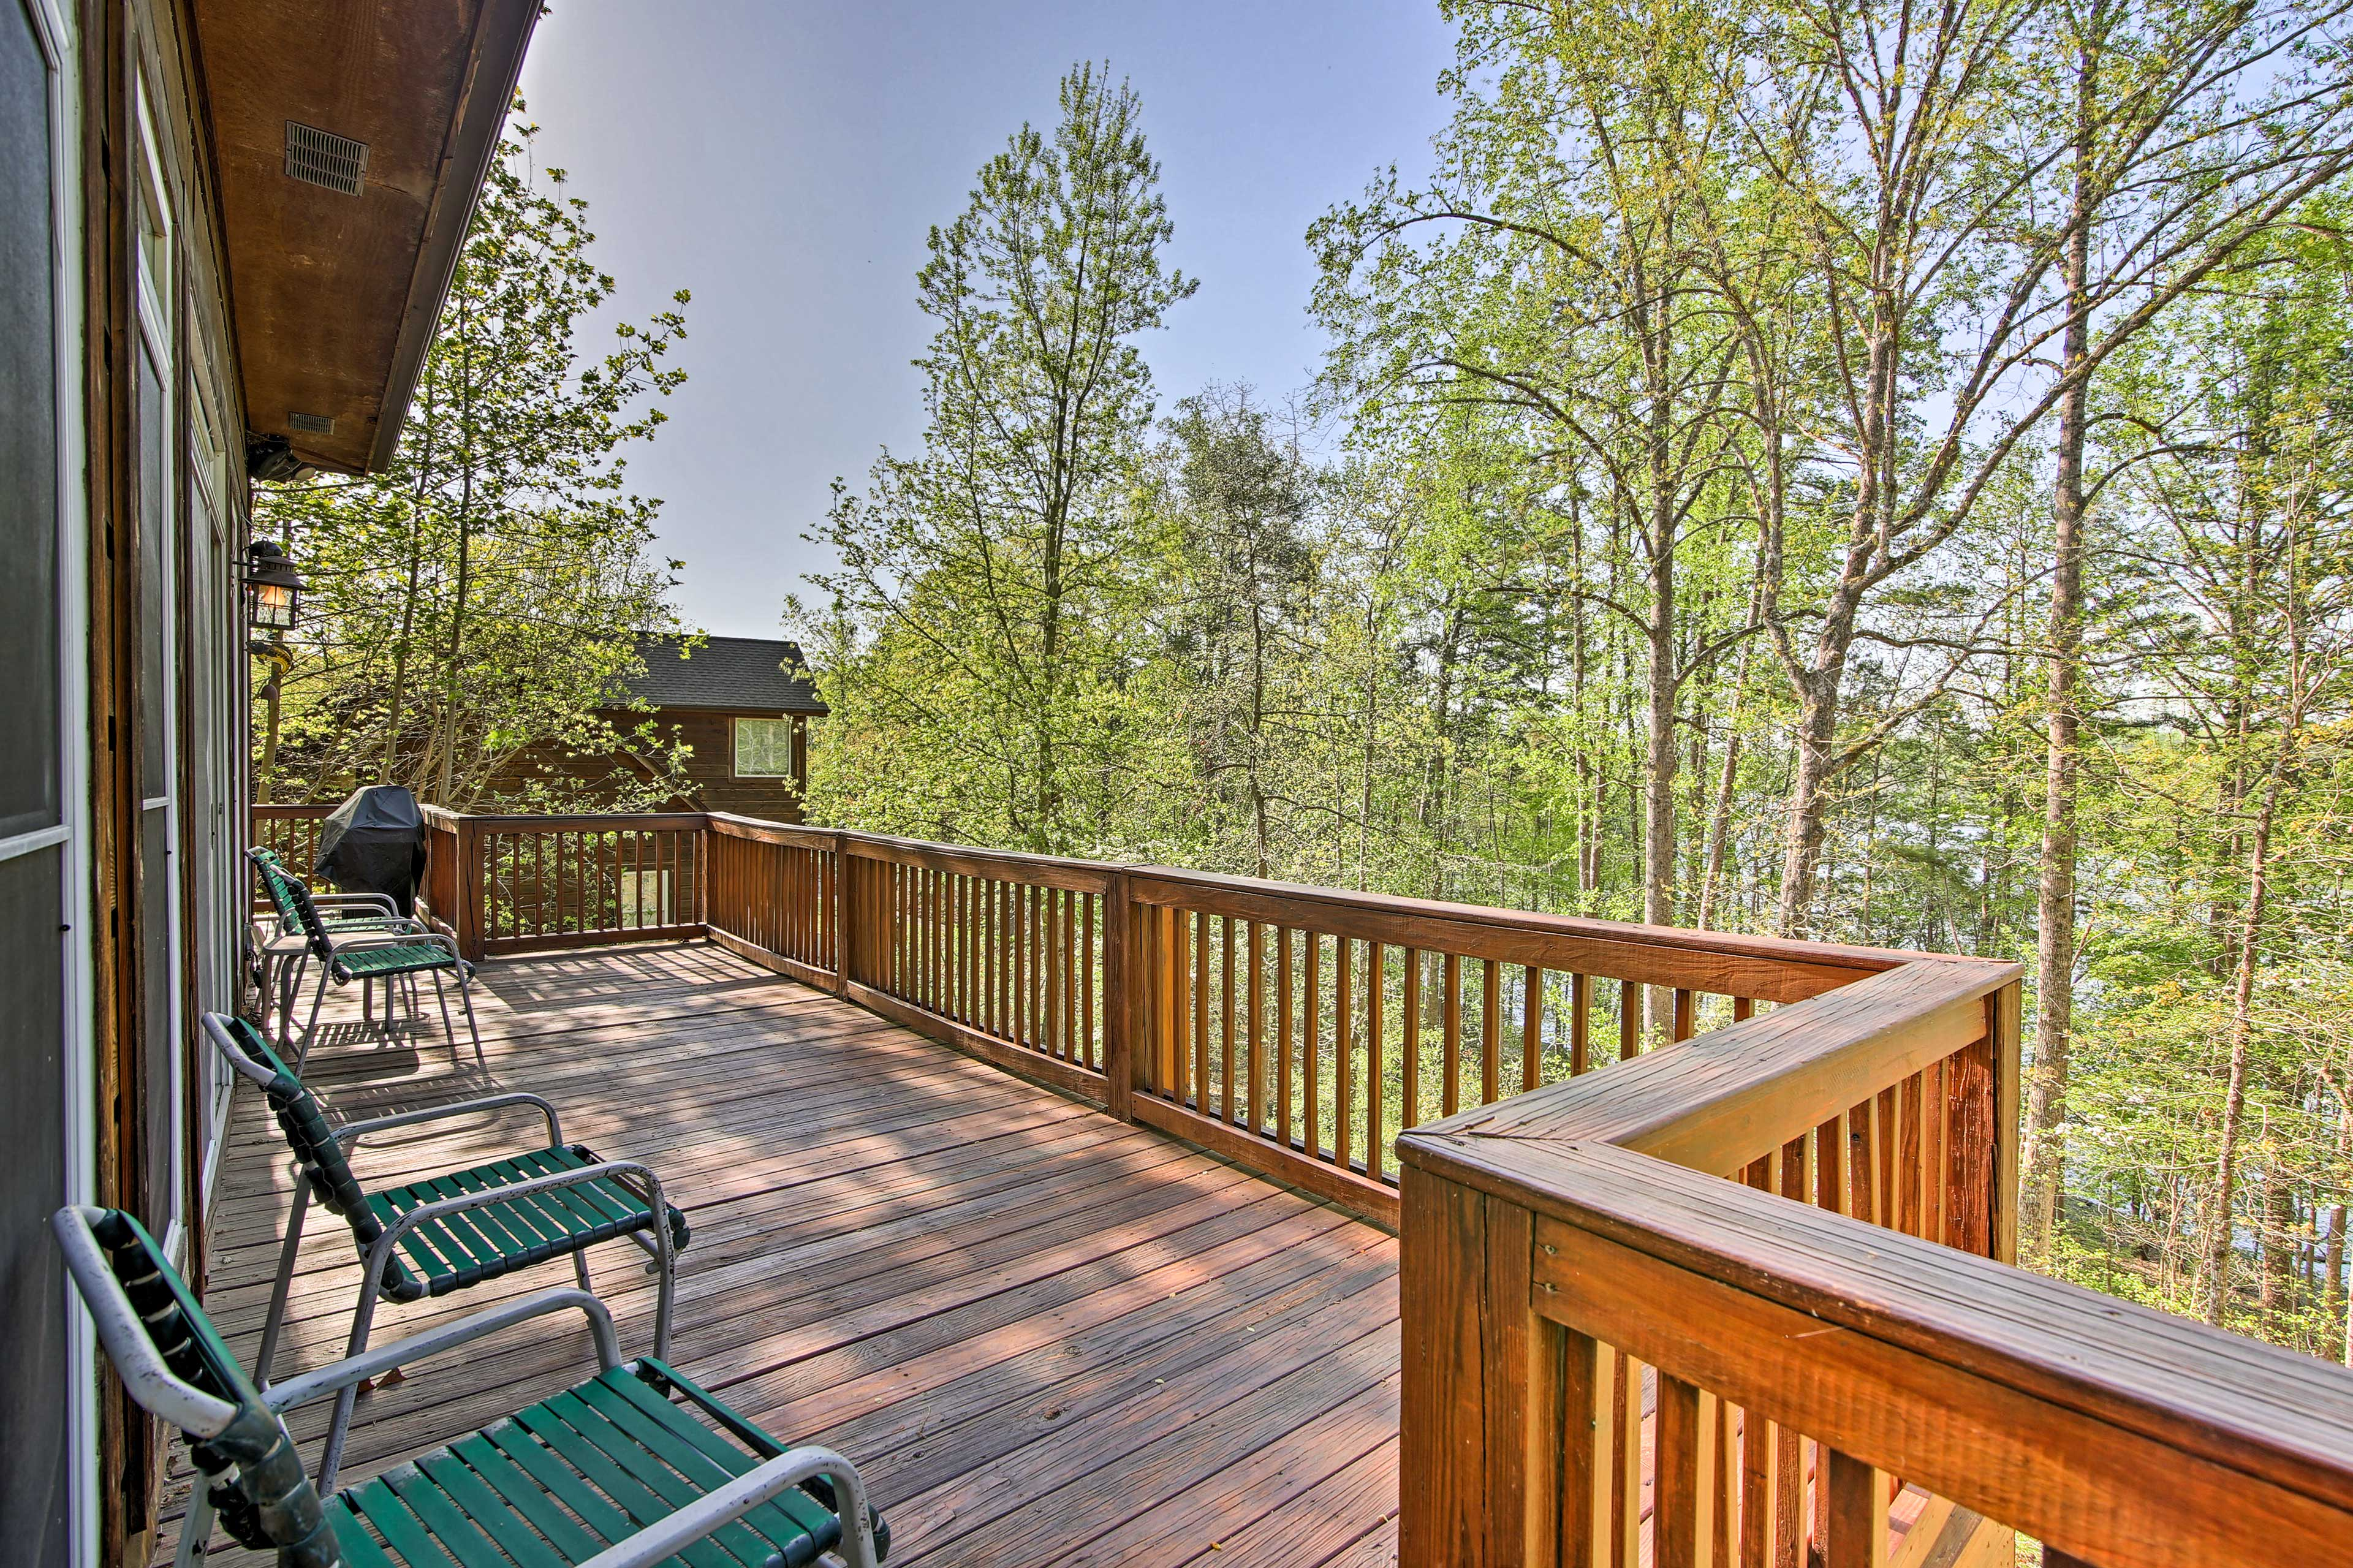 The wraparound deck provides panoramic views of the rich landscape surrounding.